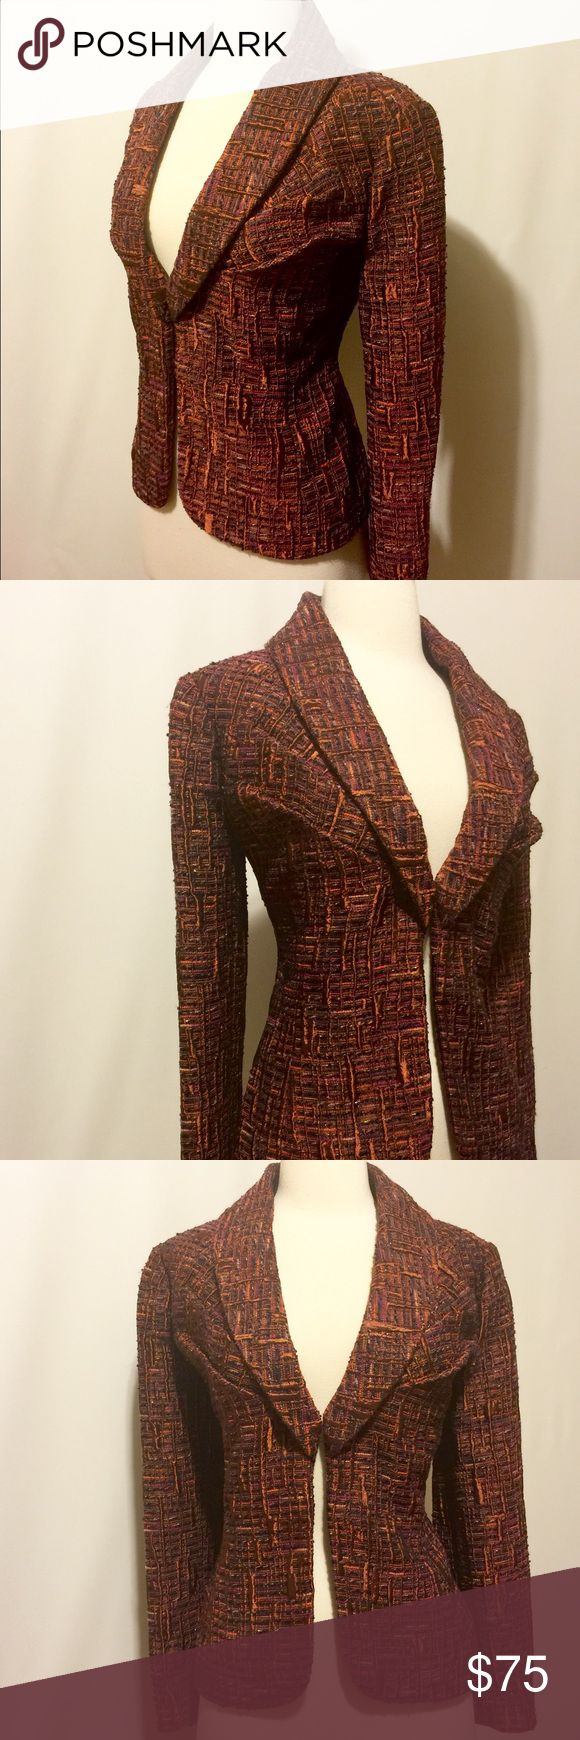 """✨ Flores & Flores Rust Plaid Brocade Dressy Jacket Dressy Jacket! A great way to dress up a simple dress or add piazza to jeans. Modern shawl collar, open front, pleated bust line, long sleeves jacket. Fully lined. Dry clean only. Missing size and care institutions label (removed because it itches). 36"""" bust 16"""" shoulder 32"""" waist 22"""" overall length 23"""" sleeve length Flores & Flores Jackets & Coats Blazers"""